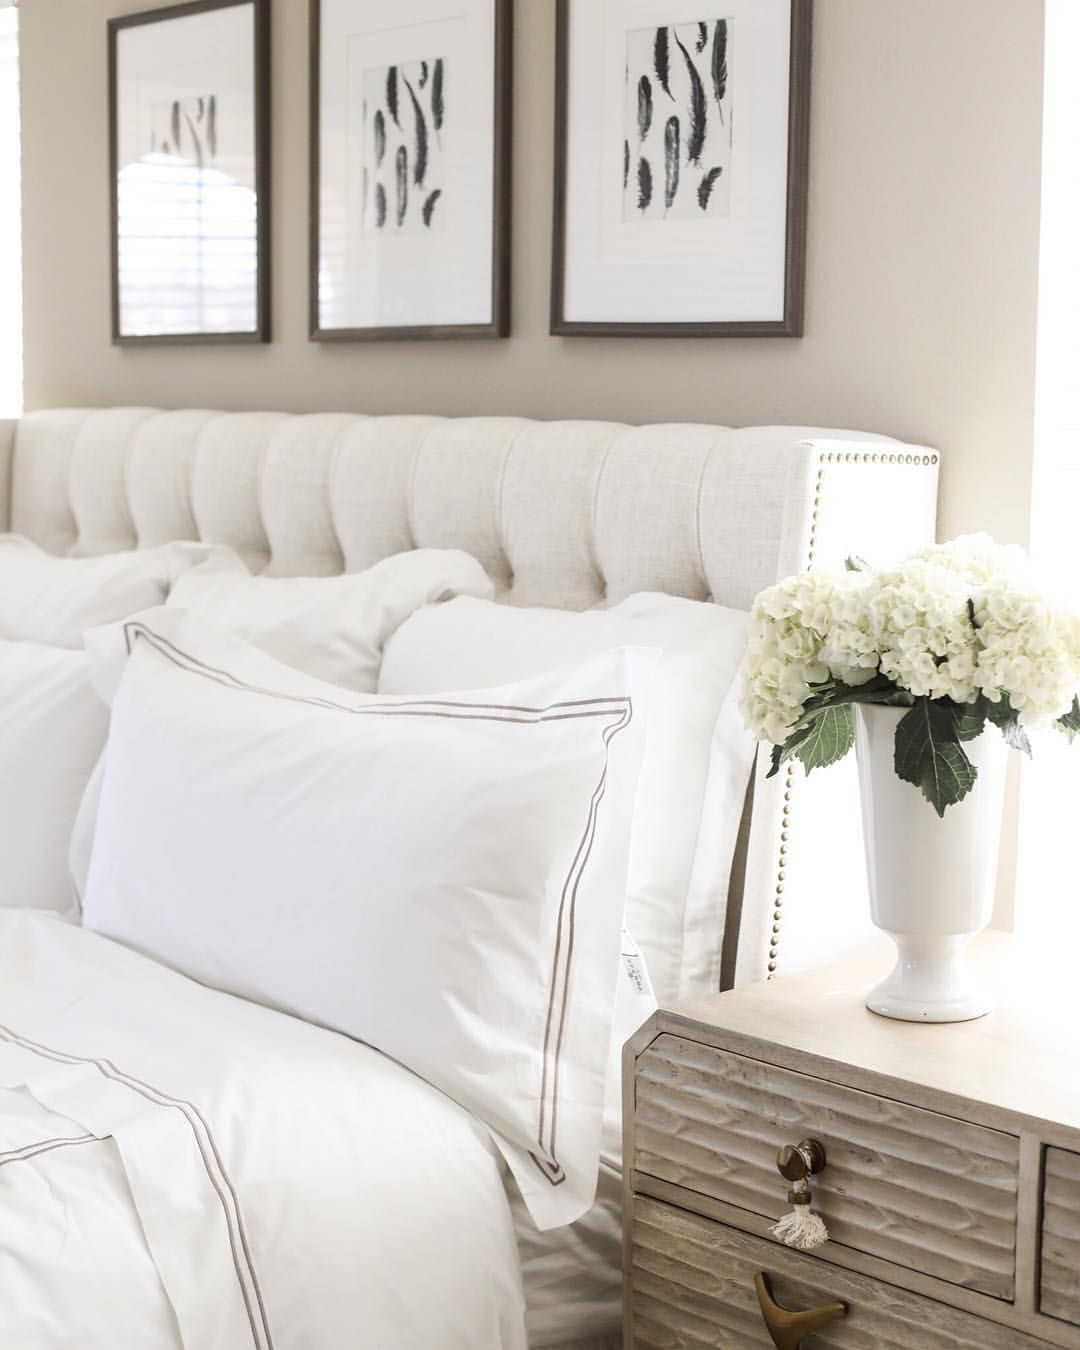 Hotel inspired bright and clean bedroom inspiration ❤️ Cream